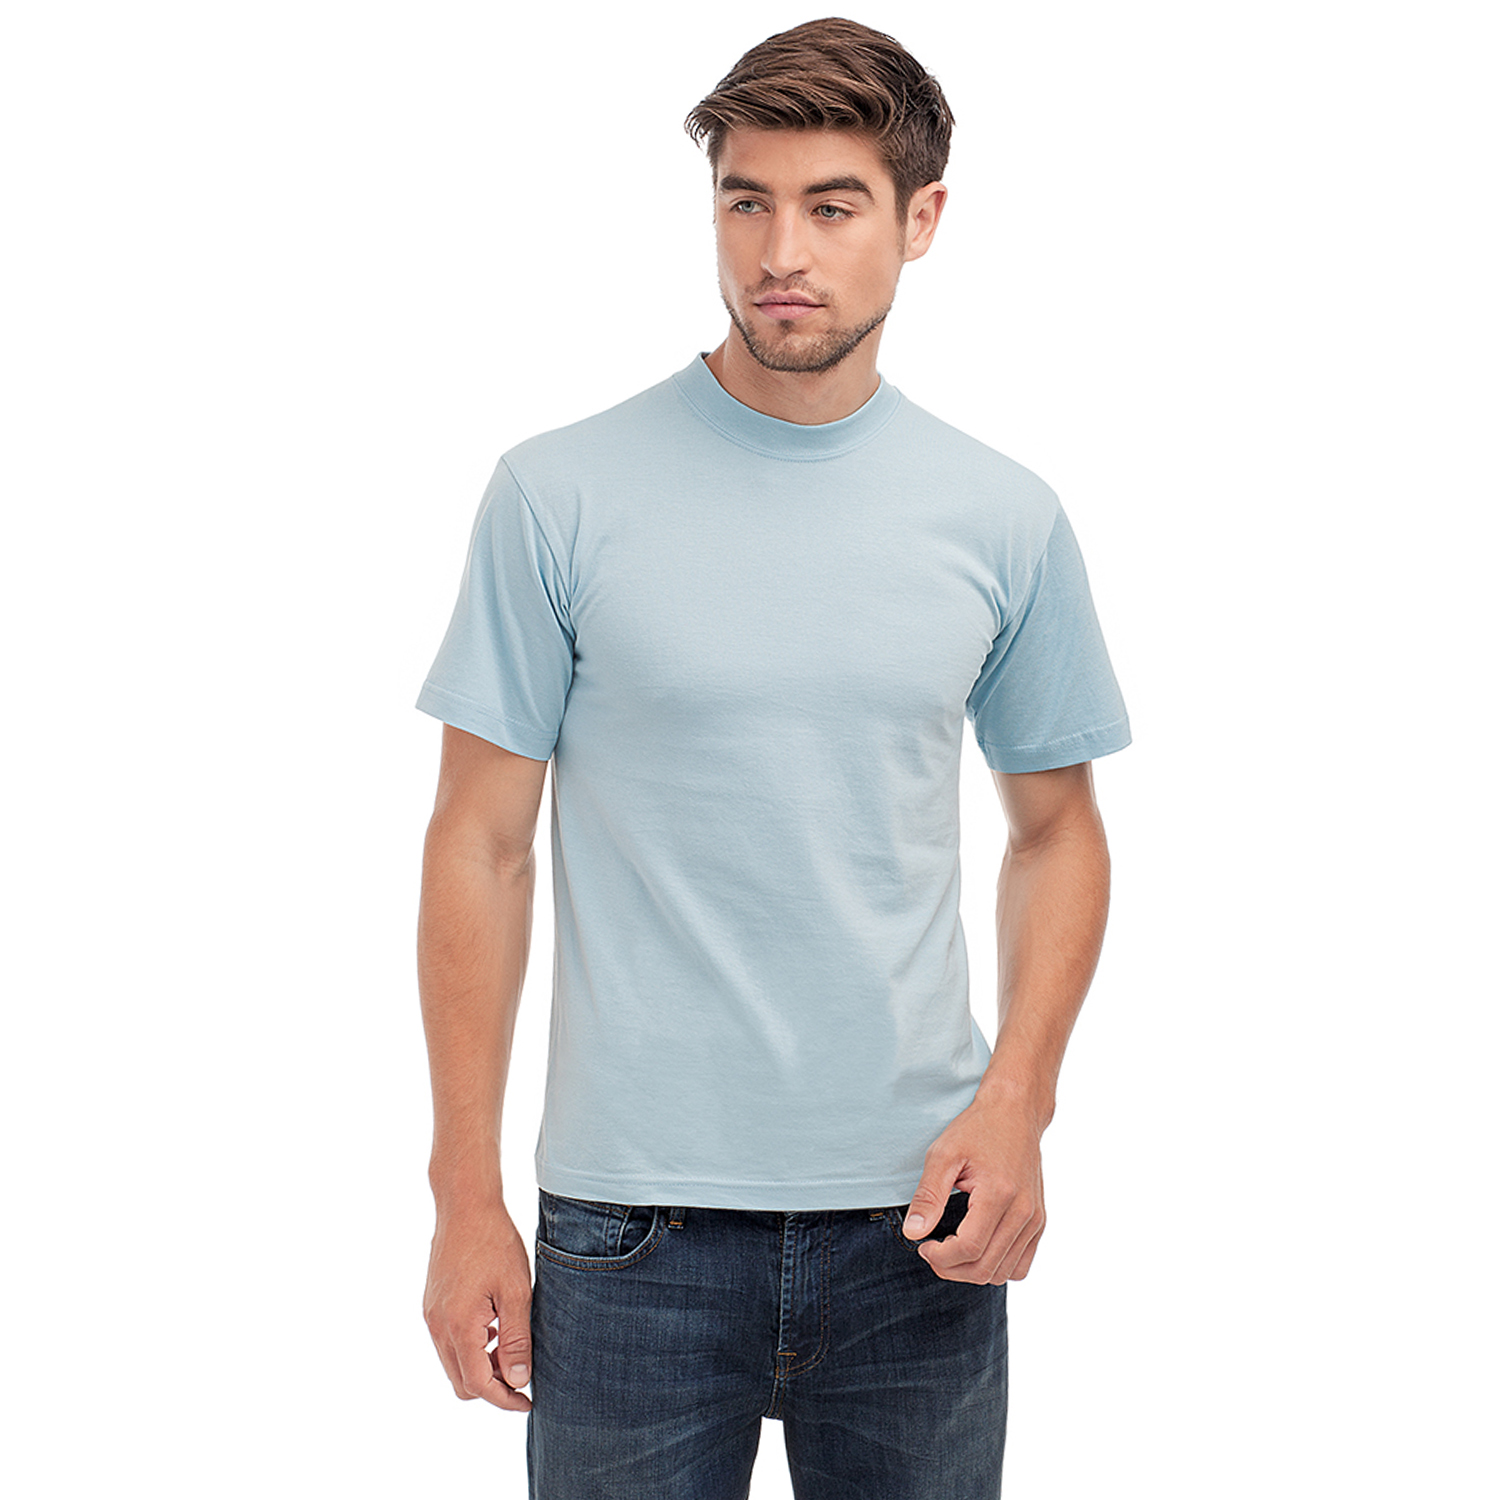 Shop the Gildan style G adult short sleeve t-shirt. This oz., % cotton tee is offered in a wide variety of size and colors. Great for printing.